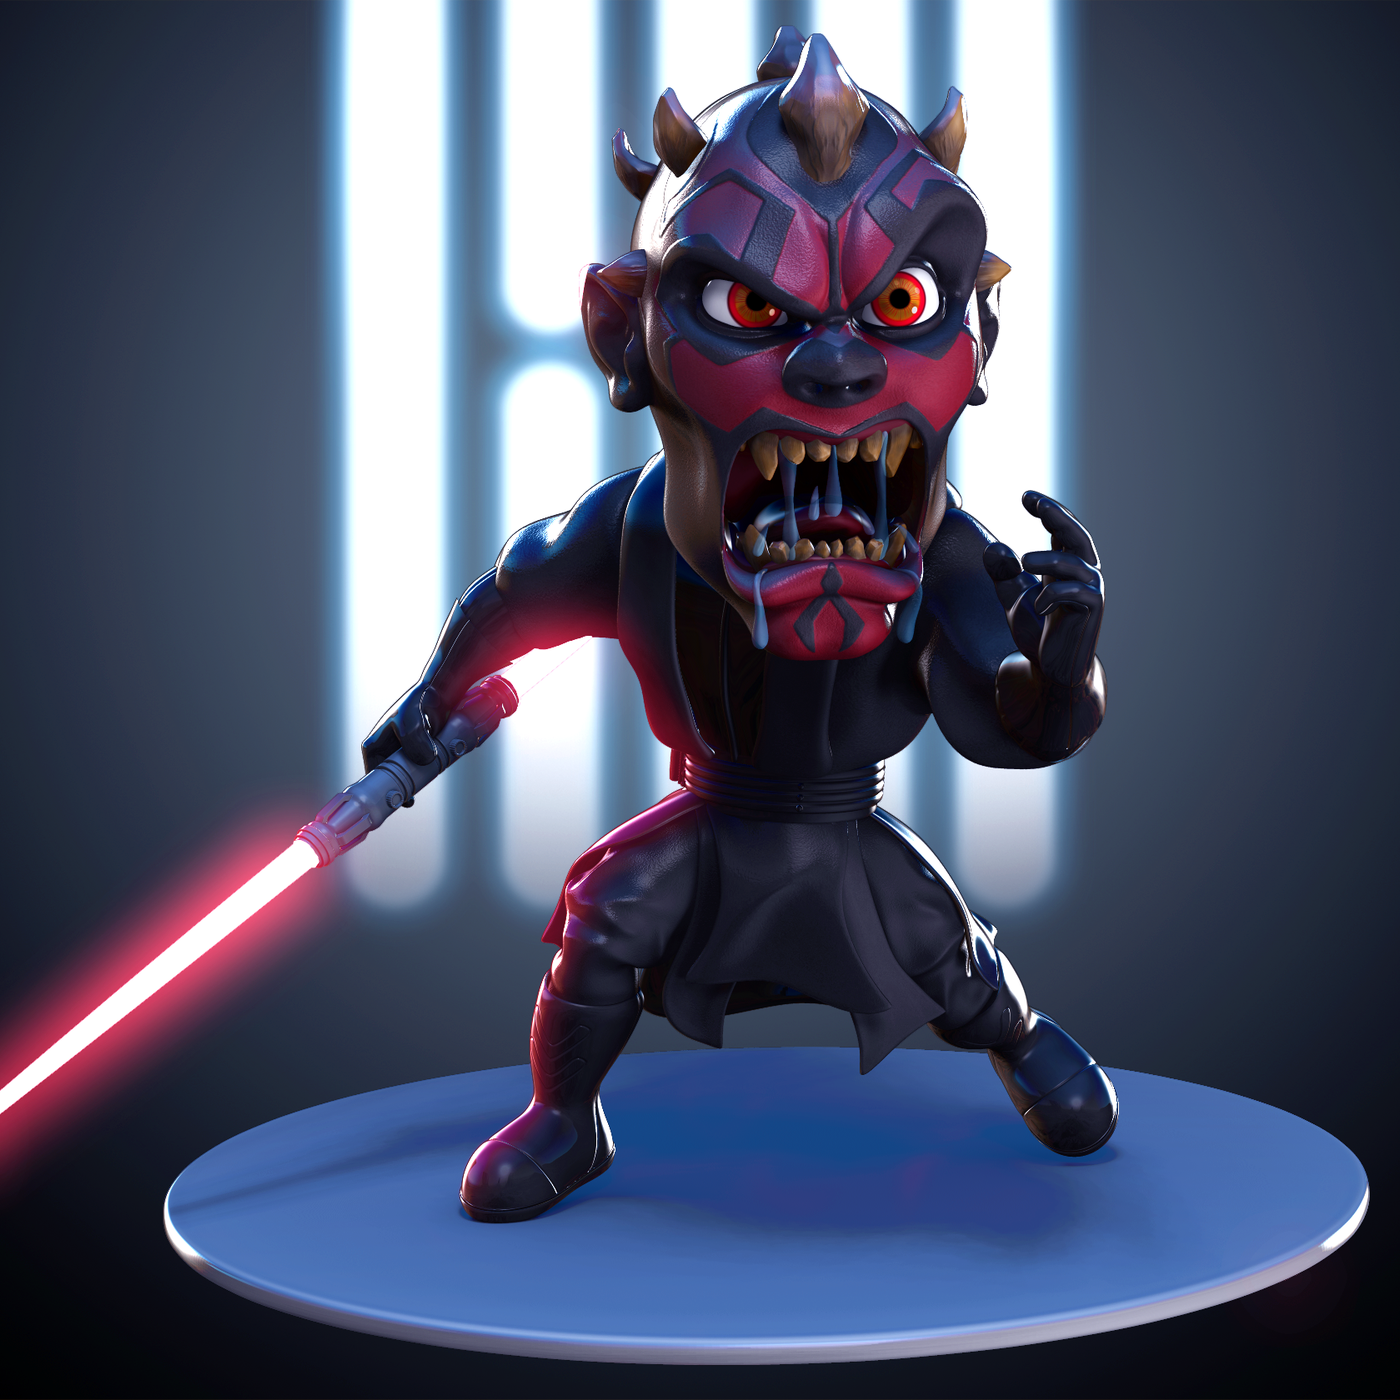 Star Wars: Darth Maul - fan art